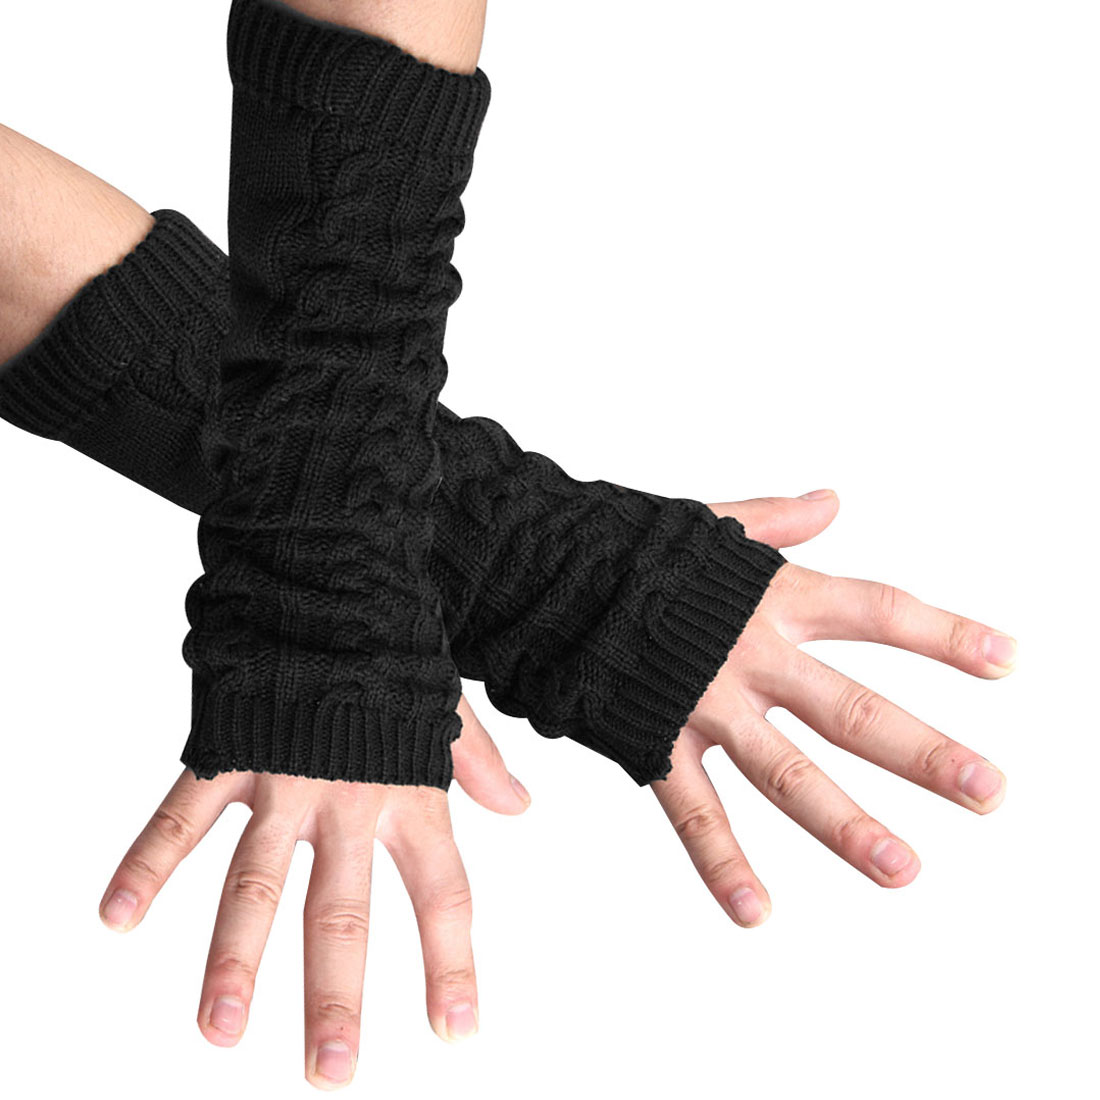 Unisex Black Thumb Hole Textured Stretchy Ribbing Knitted Gloves